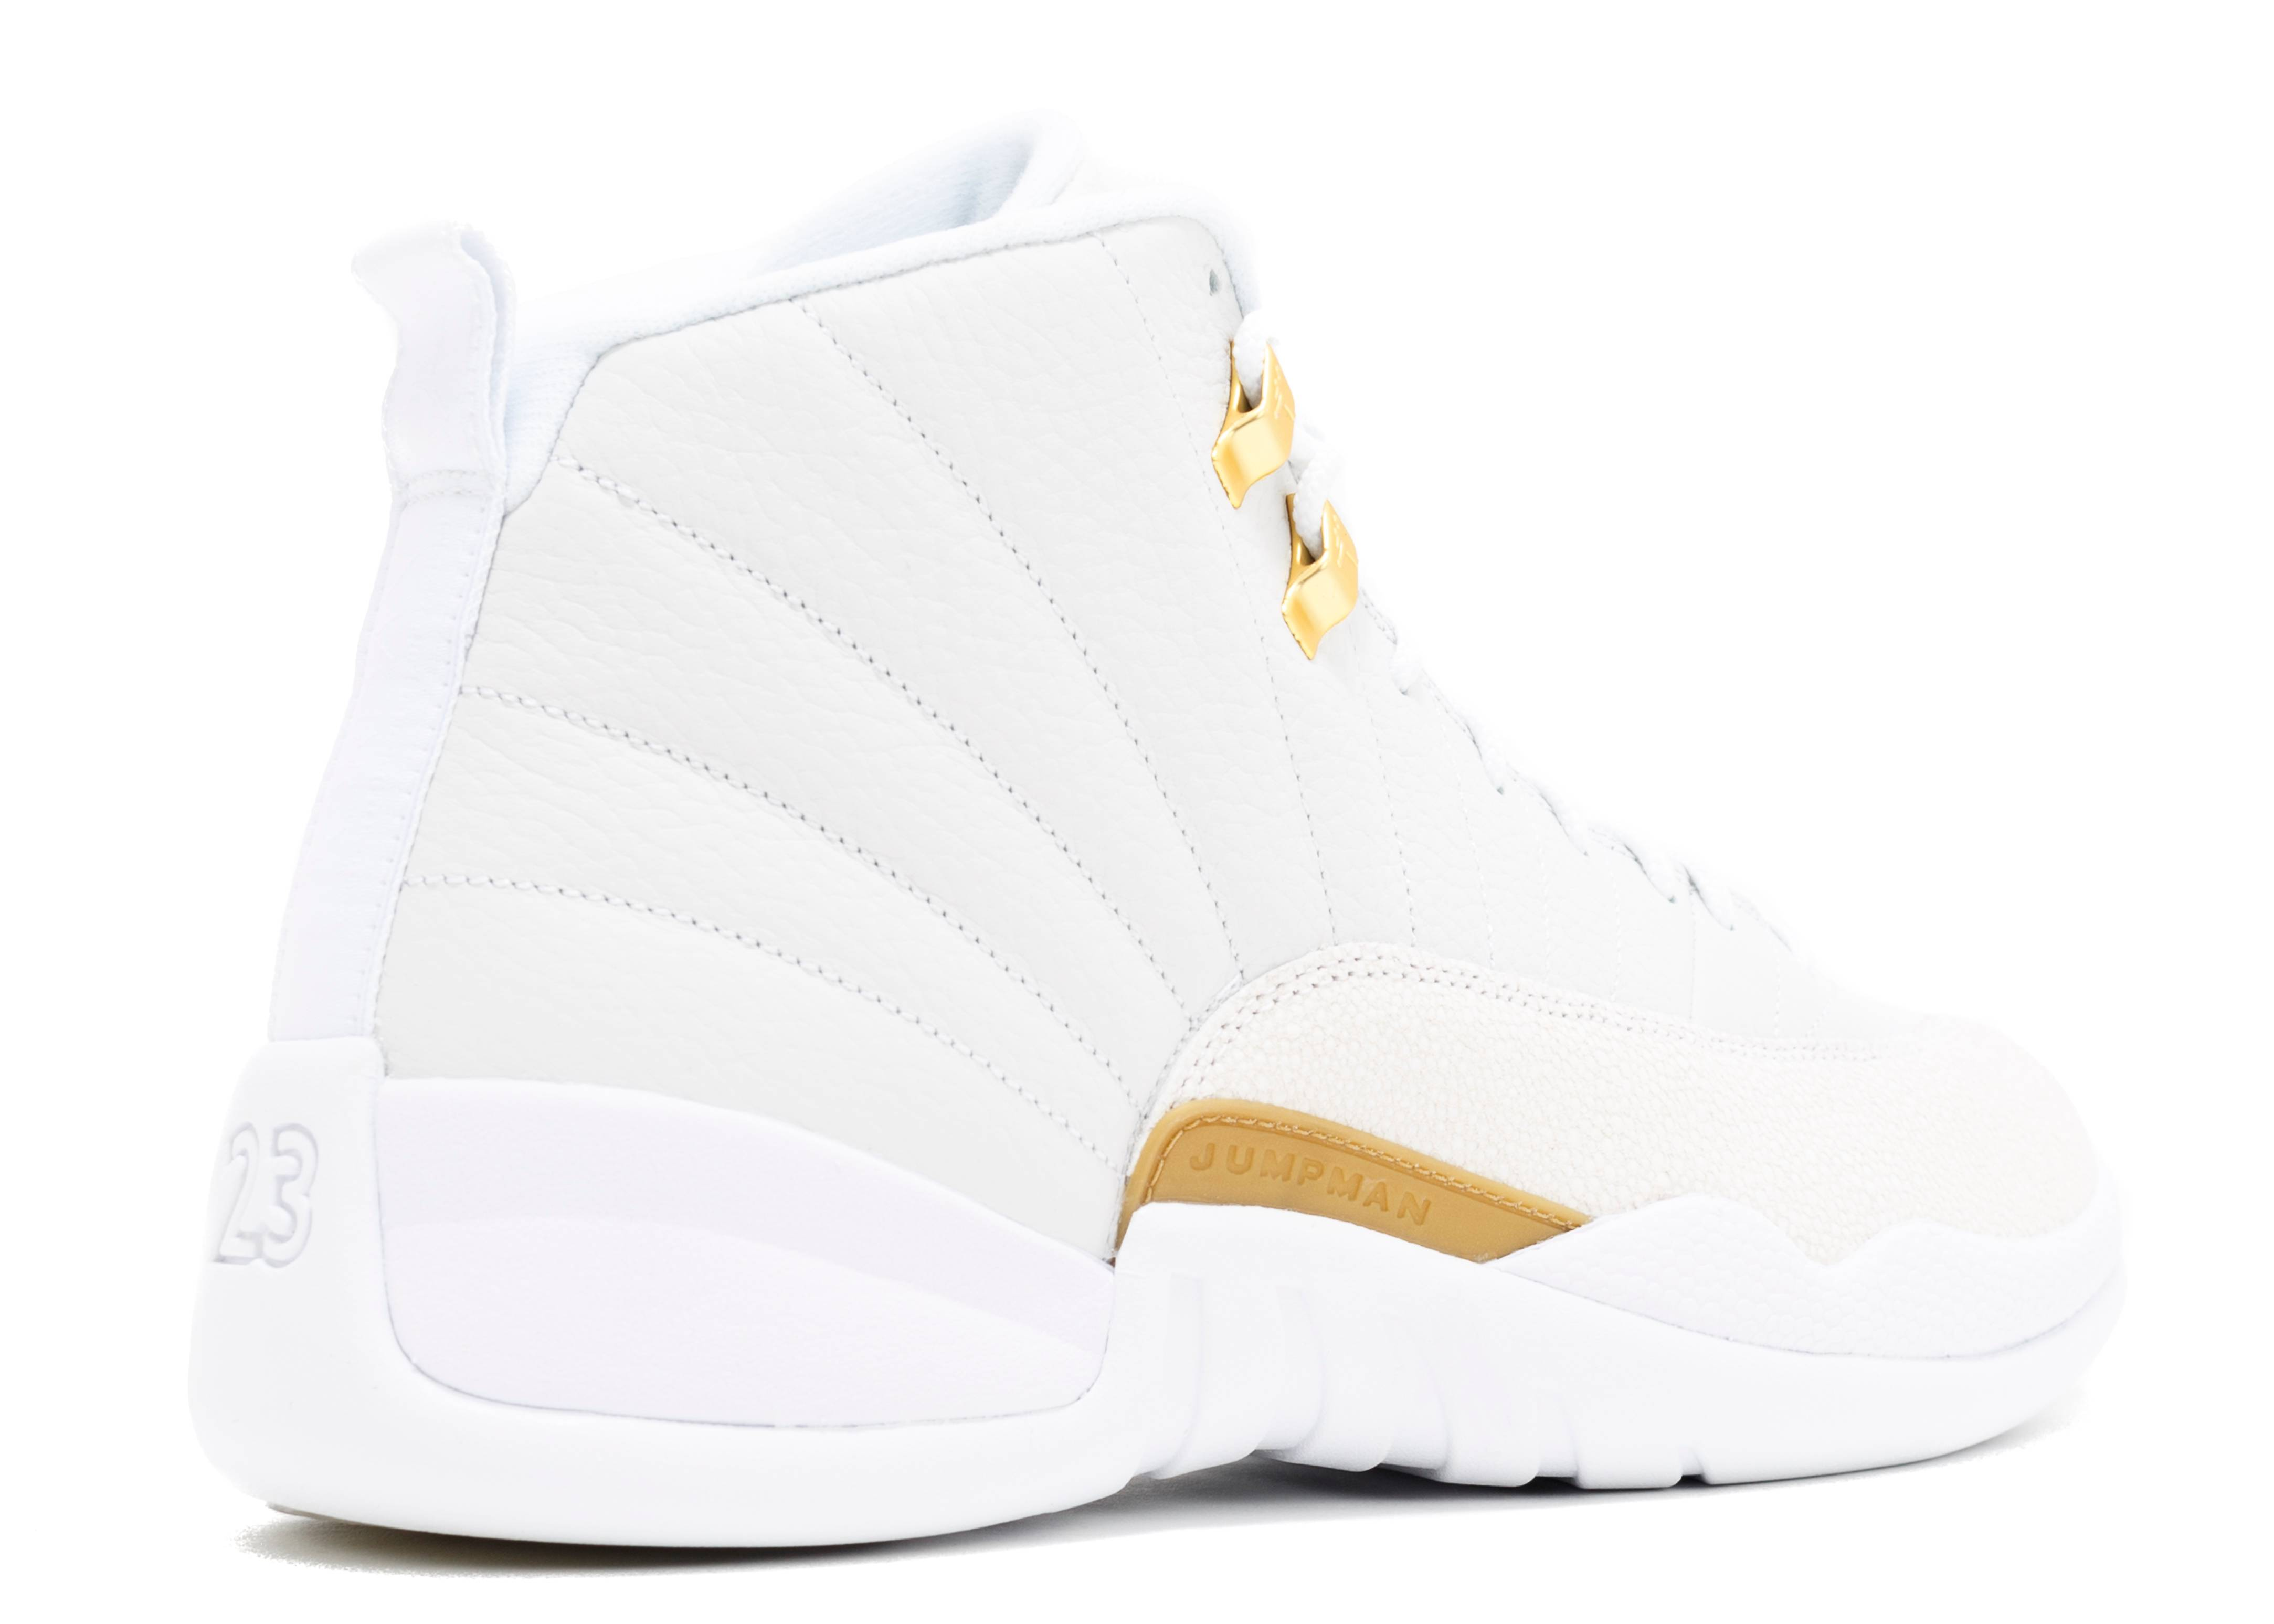 Air Jordan 12 OVO HD Unboxing Review from Repbeast.cn - YouTube